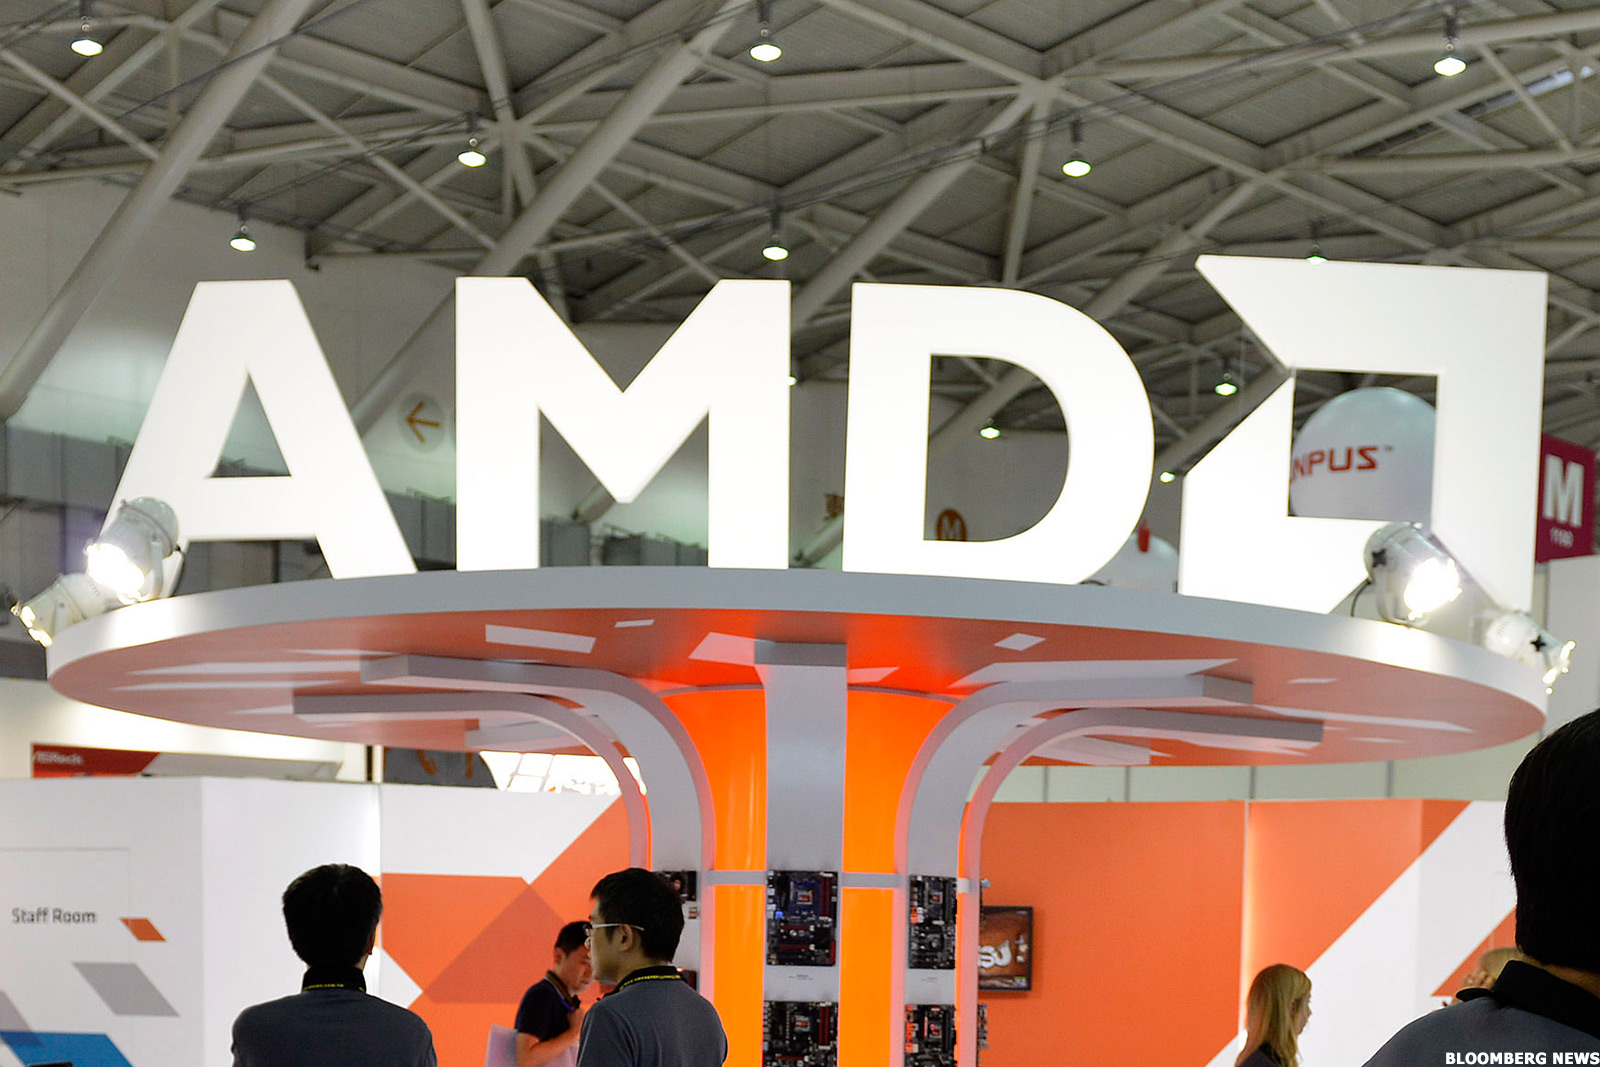 5 Reasons Why AMD Stock Is Way Overpriced Here - TheStreet